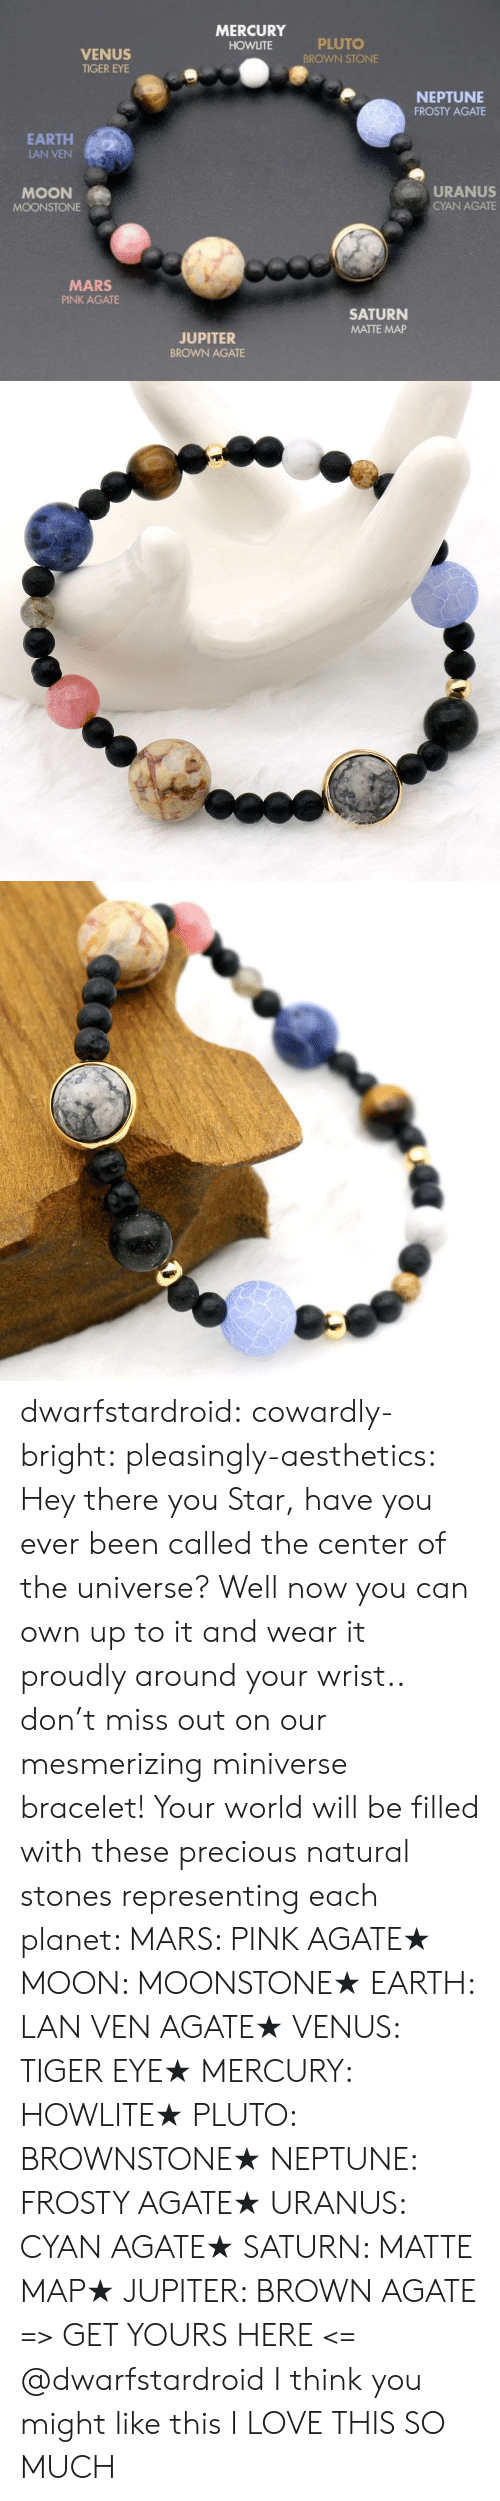 bright: MERCURY  PLUTO  BROWN STONE  HOWLITE  VENUS  TIGER EYE  NEPTUNE  FROSTY AGATE  EARTH  LAN VEN  URANUS  MOON  CYAN AGATE  MOONSTONE  MARS  PINK AGATE  SATURN  MATTE MAP  JUPITER  BROWN AGATE dwarfstardroid:  cowardly-bright:  pleasingly-aesthetics: Hey there you Star, have you ever been called the center of the universe? Well now you can own up to it and wear it proudly around your wrist.. don't miss out on our mesmerizing miniverse bracelet! Your world will be filled with these precious natural stones representing each planet:  MARS: PINK AGATE★ MOON: MOONSTONE★ EARTH: LAN VEN AGATE★ VENUS: TIGER EYE★ MERCURY: HOWLITE★ PLUTO: BROWNSTONE★ NEPTUNE: FROSTY AGATE★ URANUS: CYAN AGATE★ SATURN: MATTE MAP★ JUPITER: BROWN AGATE => GET YOURS HERE <=  @dwarfstardroid I think you might like this  I LOVE THIS SO MUCH